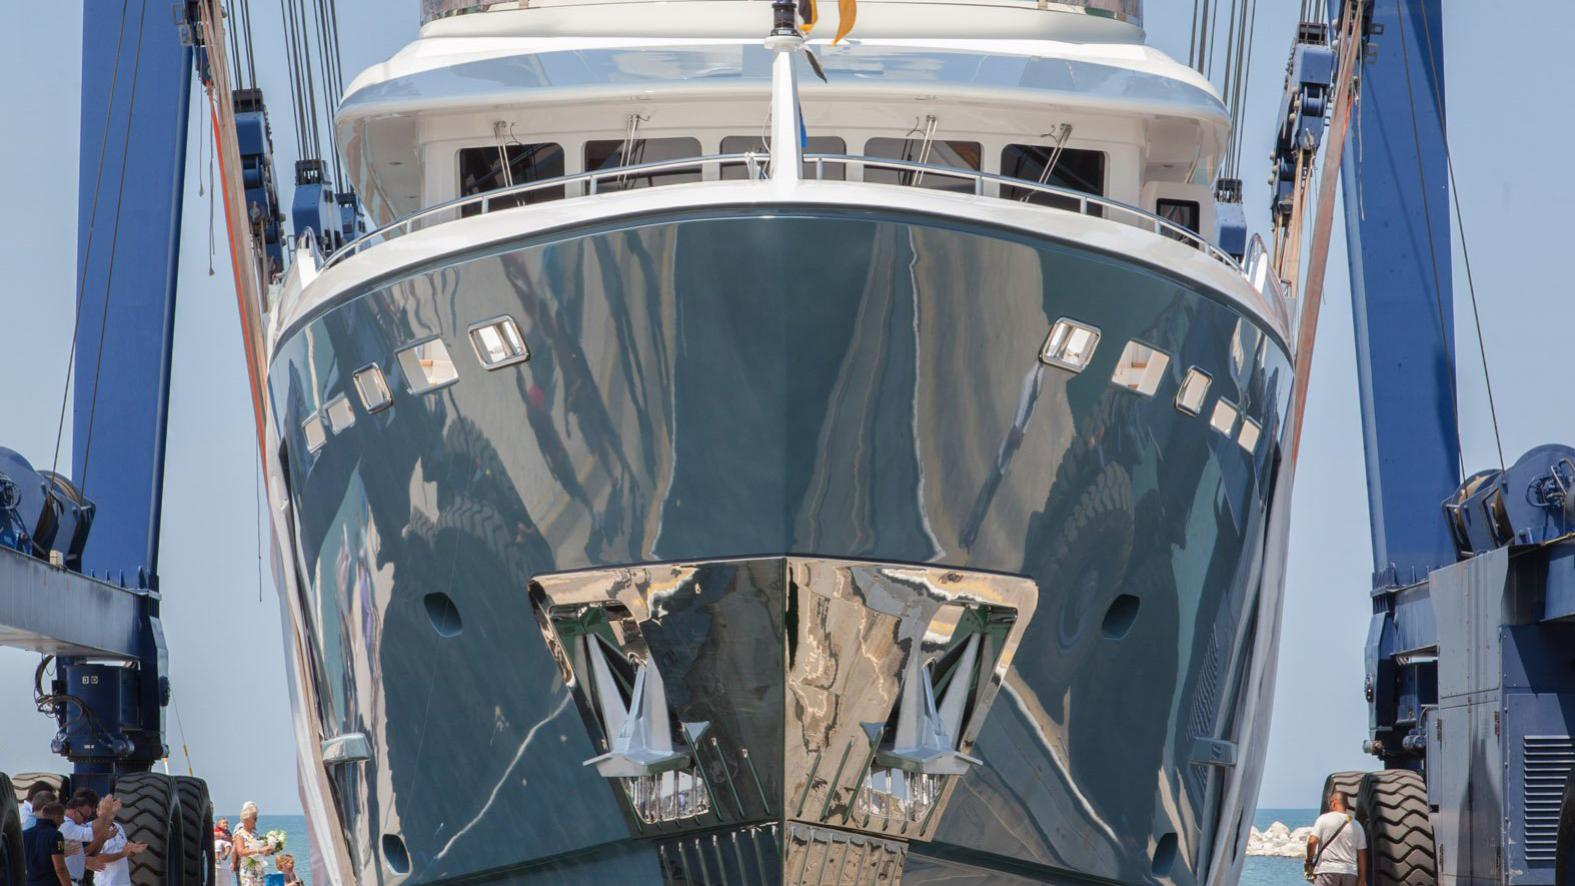 storm-motor-yacht-cantiere-dell-marche-darwin-107-2015-33m-bow-hull